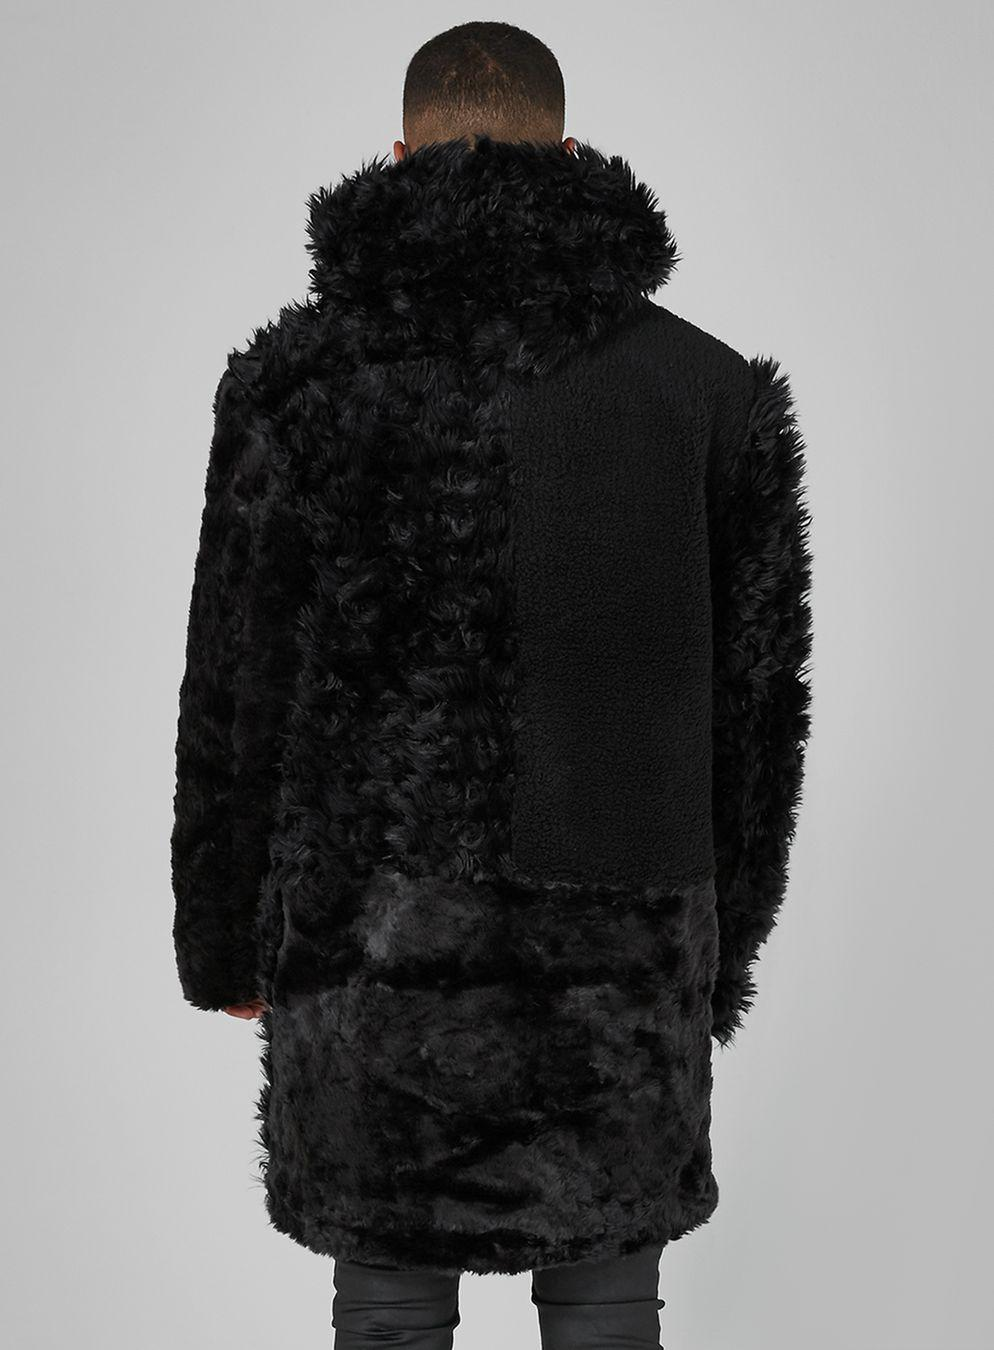 TOPMAN Synthetic Black Faux Fur And Borg Patchwork Jacket for Men